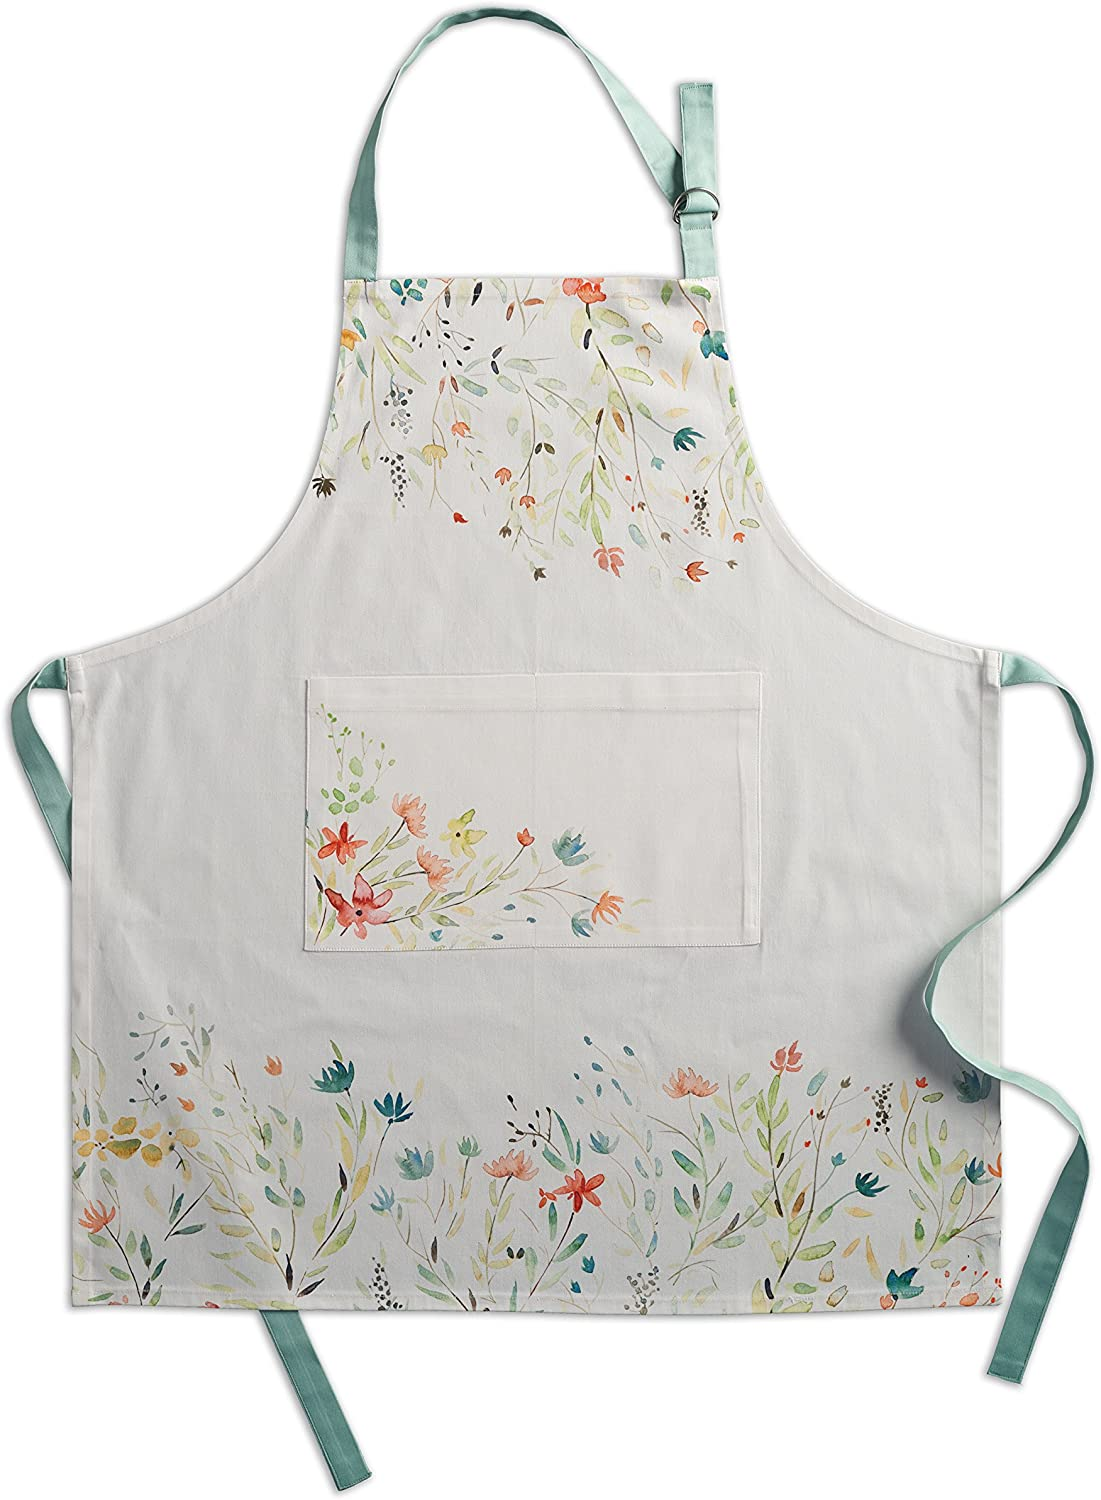 16 Perfect Mother's Day Gift Ideas apron